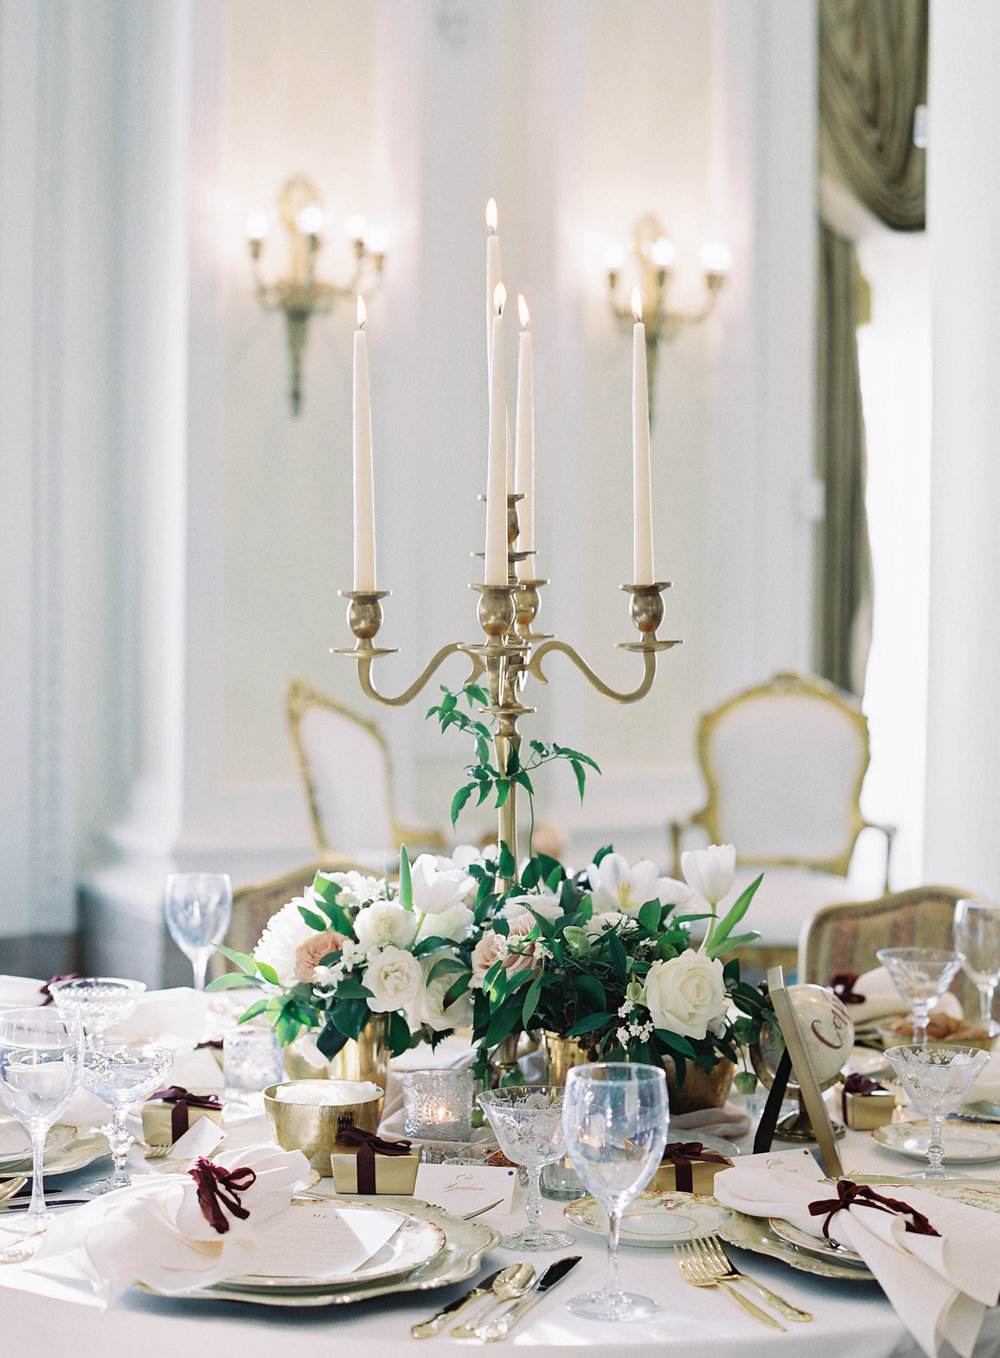 Baltimore, Darling and Daughters Florals, Washington DC, Charlottesville, Richmond, Events, Monthly, Flower Subscriptions, Jefferson Hotels086.JPG